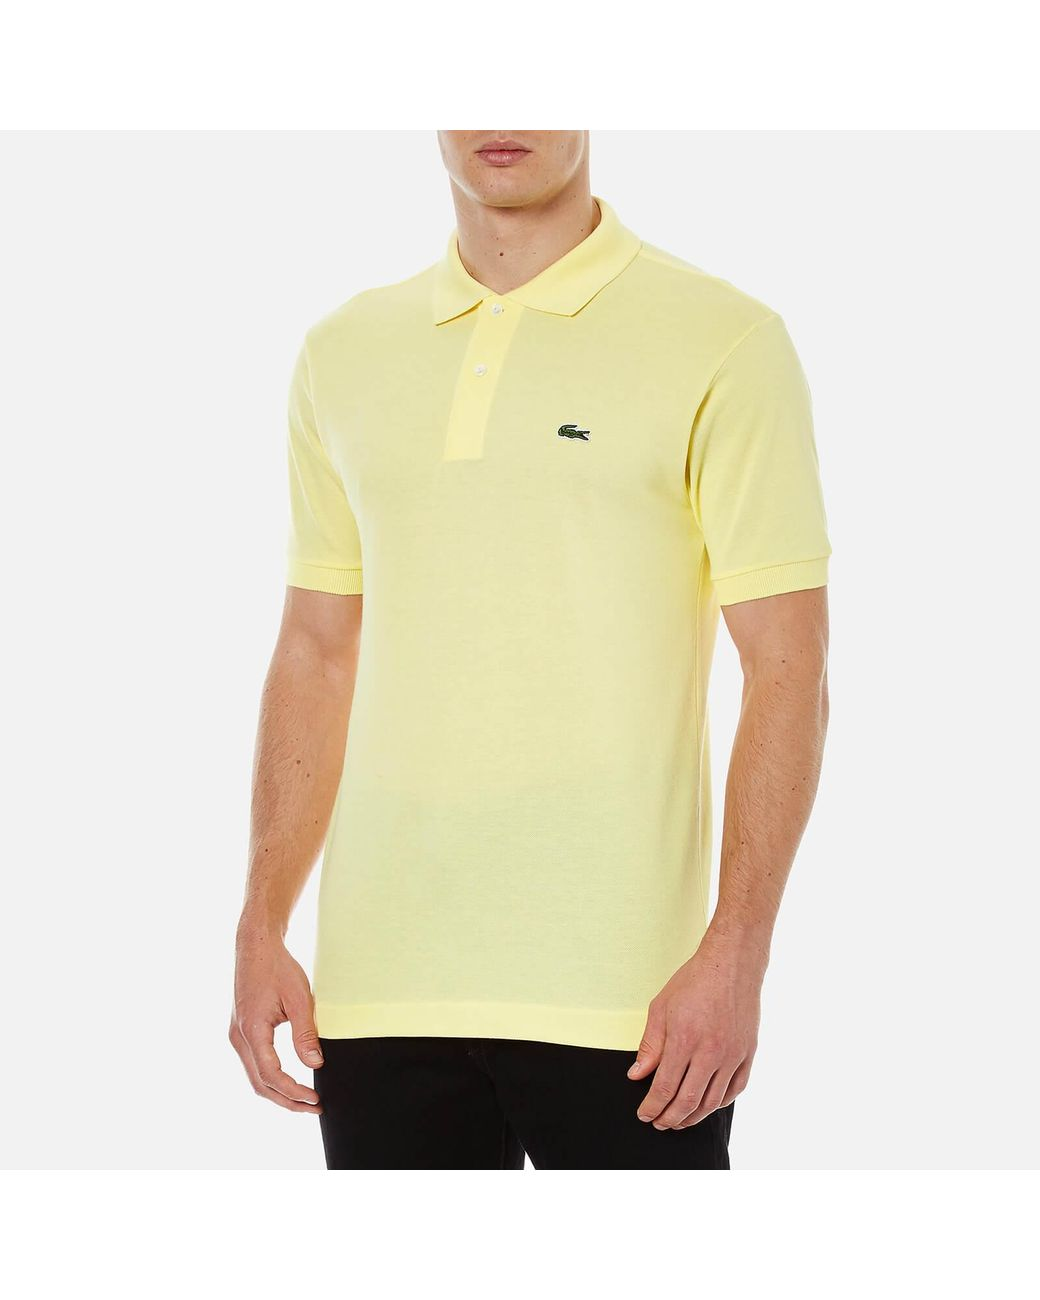 2abfacca8 Lacoste Pique Polo - Classic Fit in Yellow for Men - Save 31% - Lyst